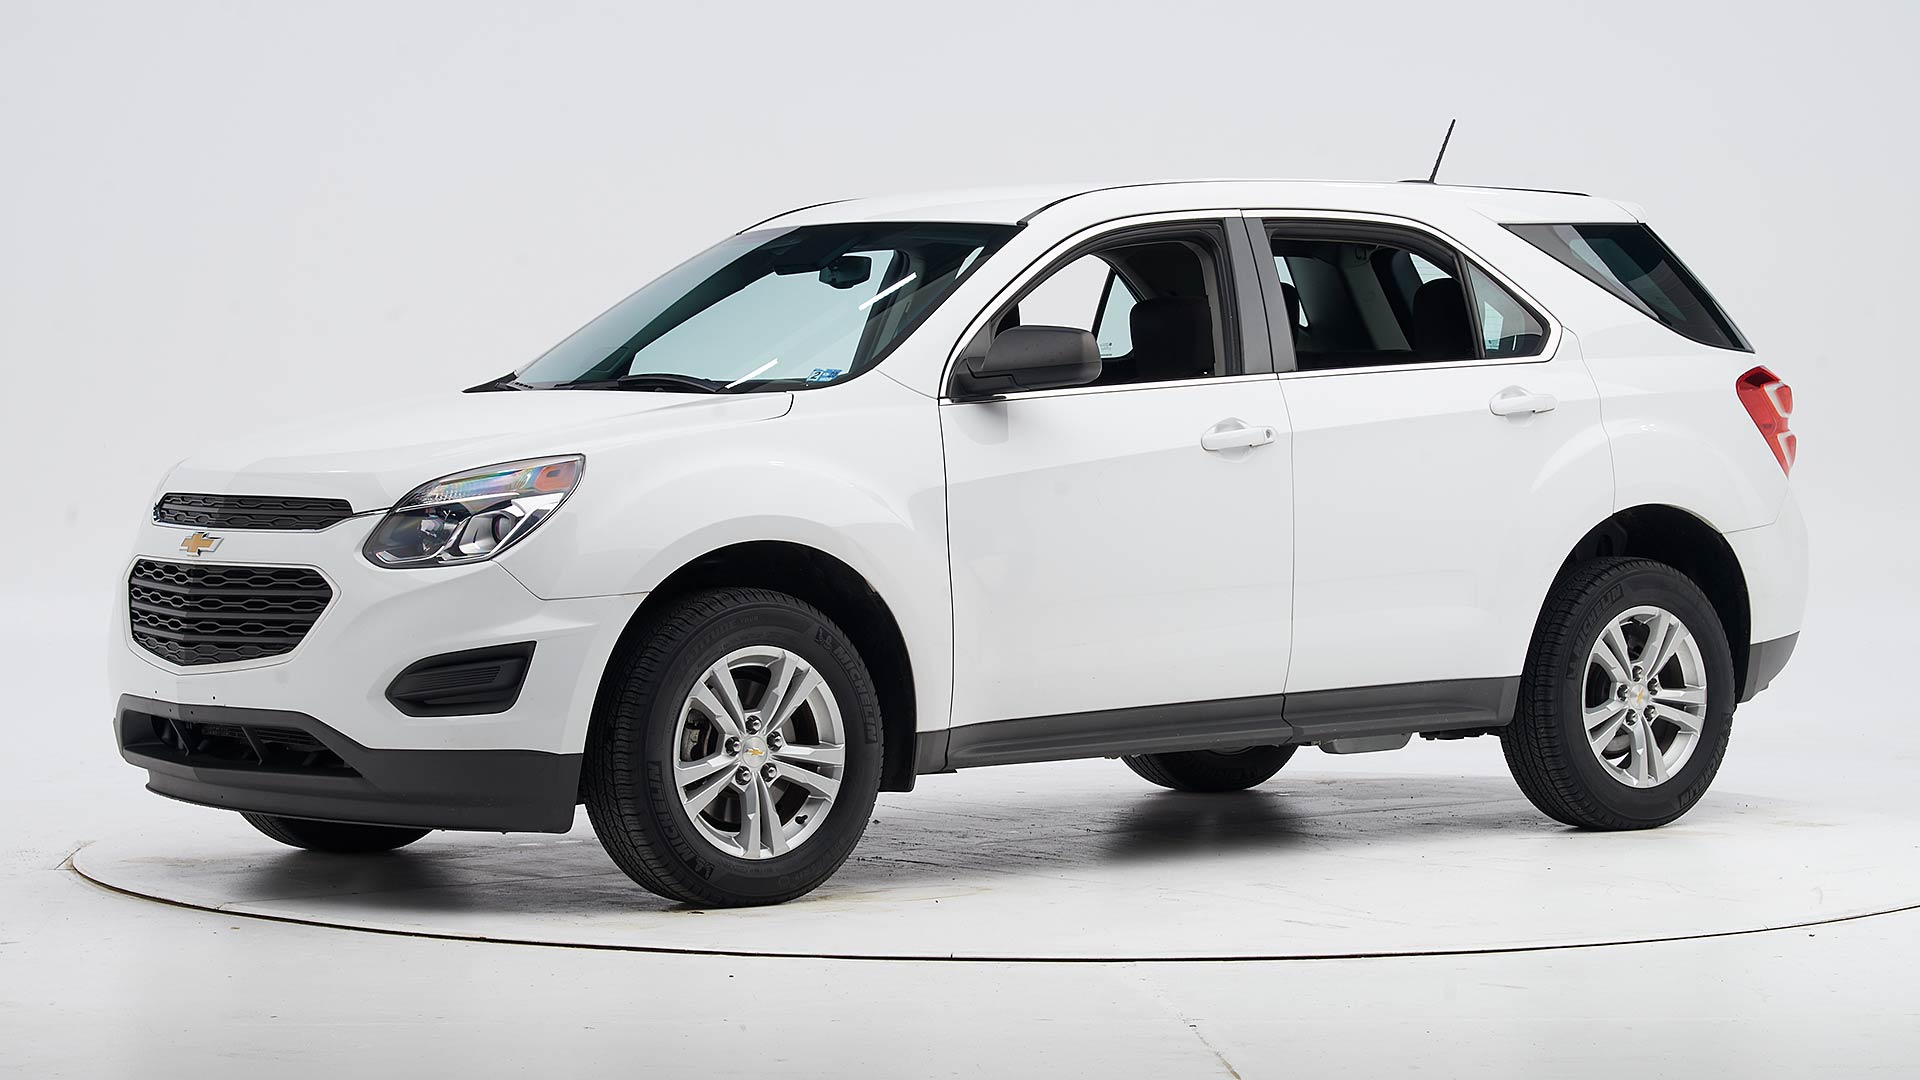 2016 Chevrolet Equinox 4-door SUV